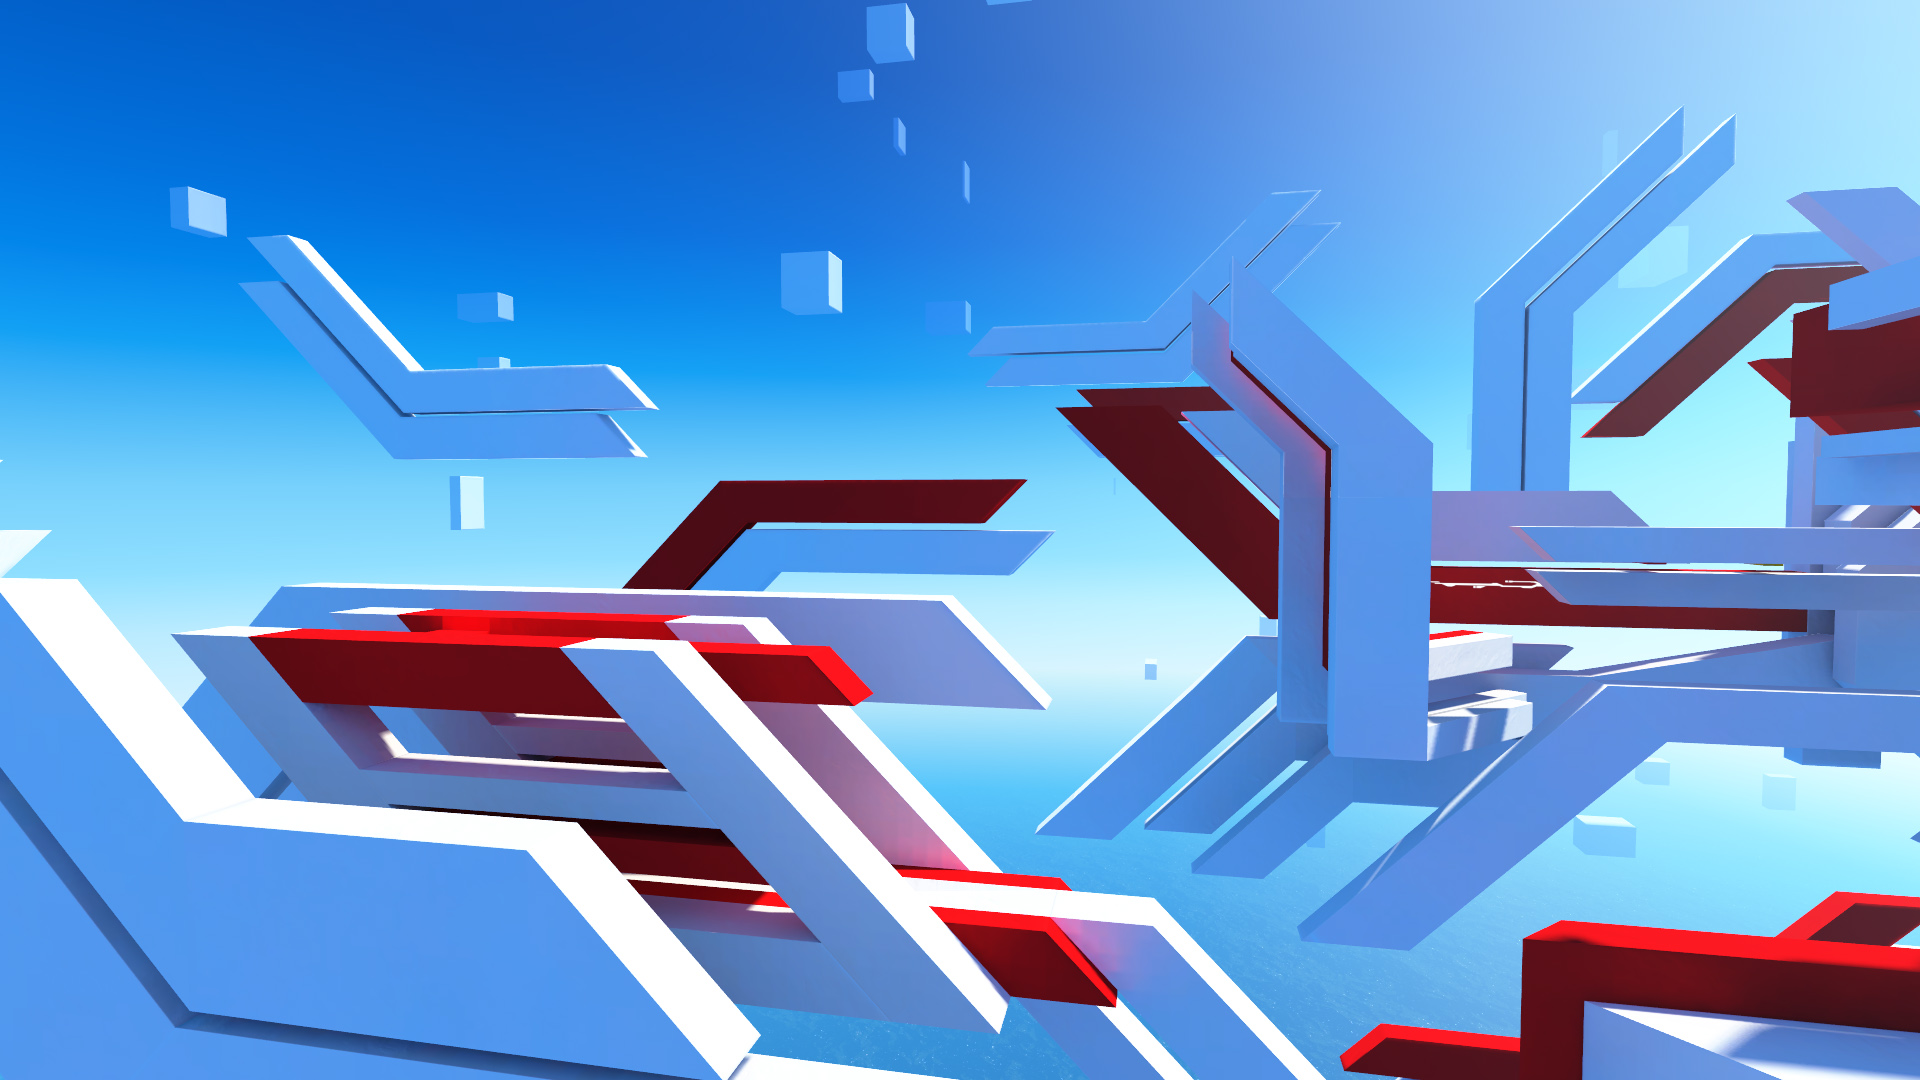 Mirrors Edge wallpaper 1920x1080 192962 WallpaperUP 1920x1080